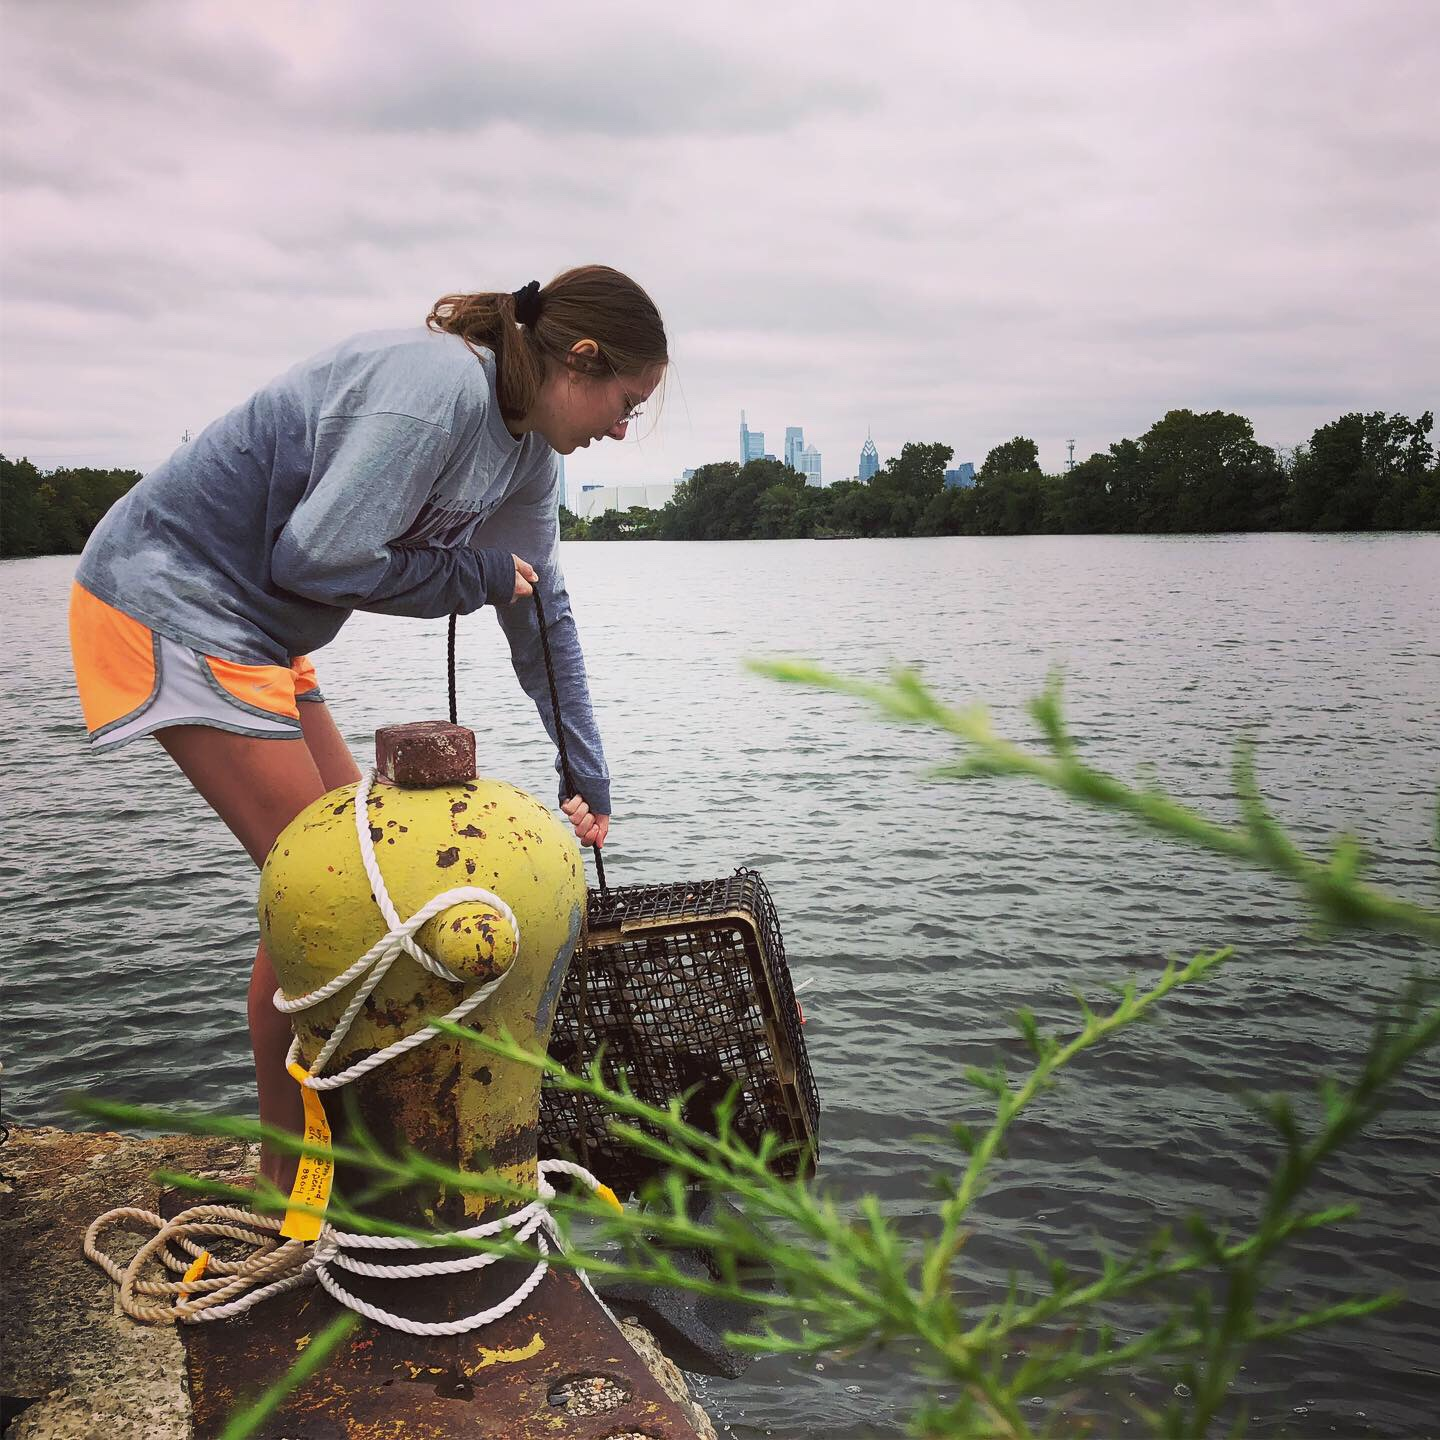 Penn Biology student, Izzy Viney, retrieves mussels from the Schuylkill River at our Bartram's Garden research and community outreach site on S. 56th street.